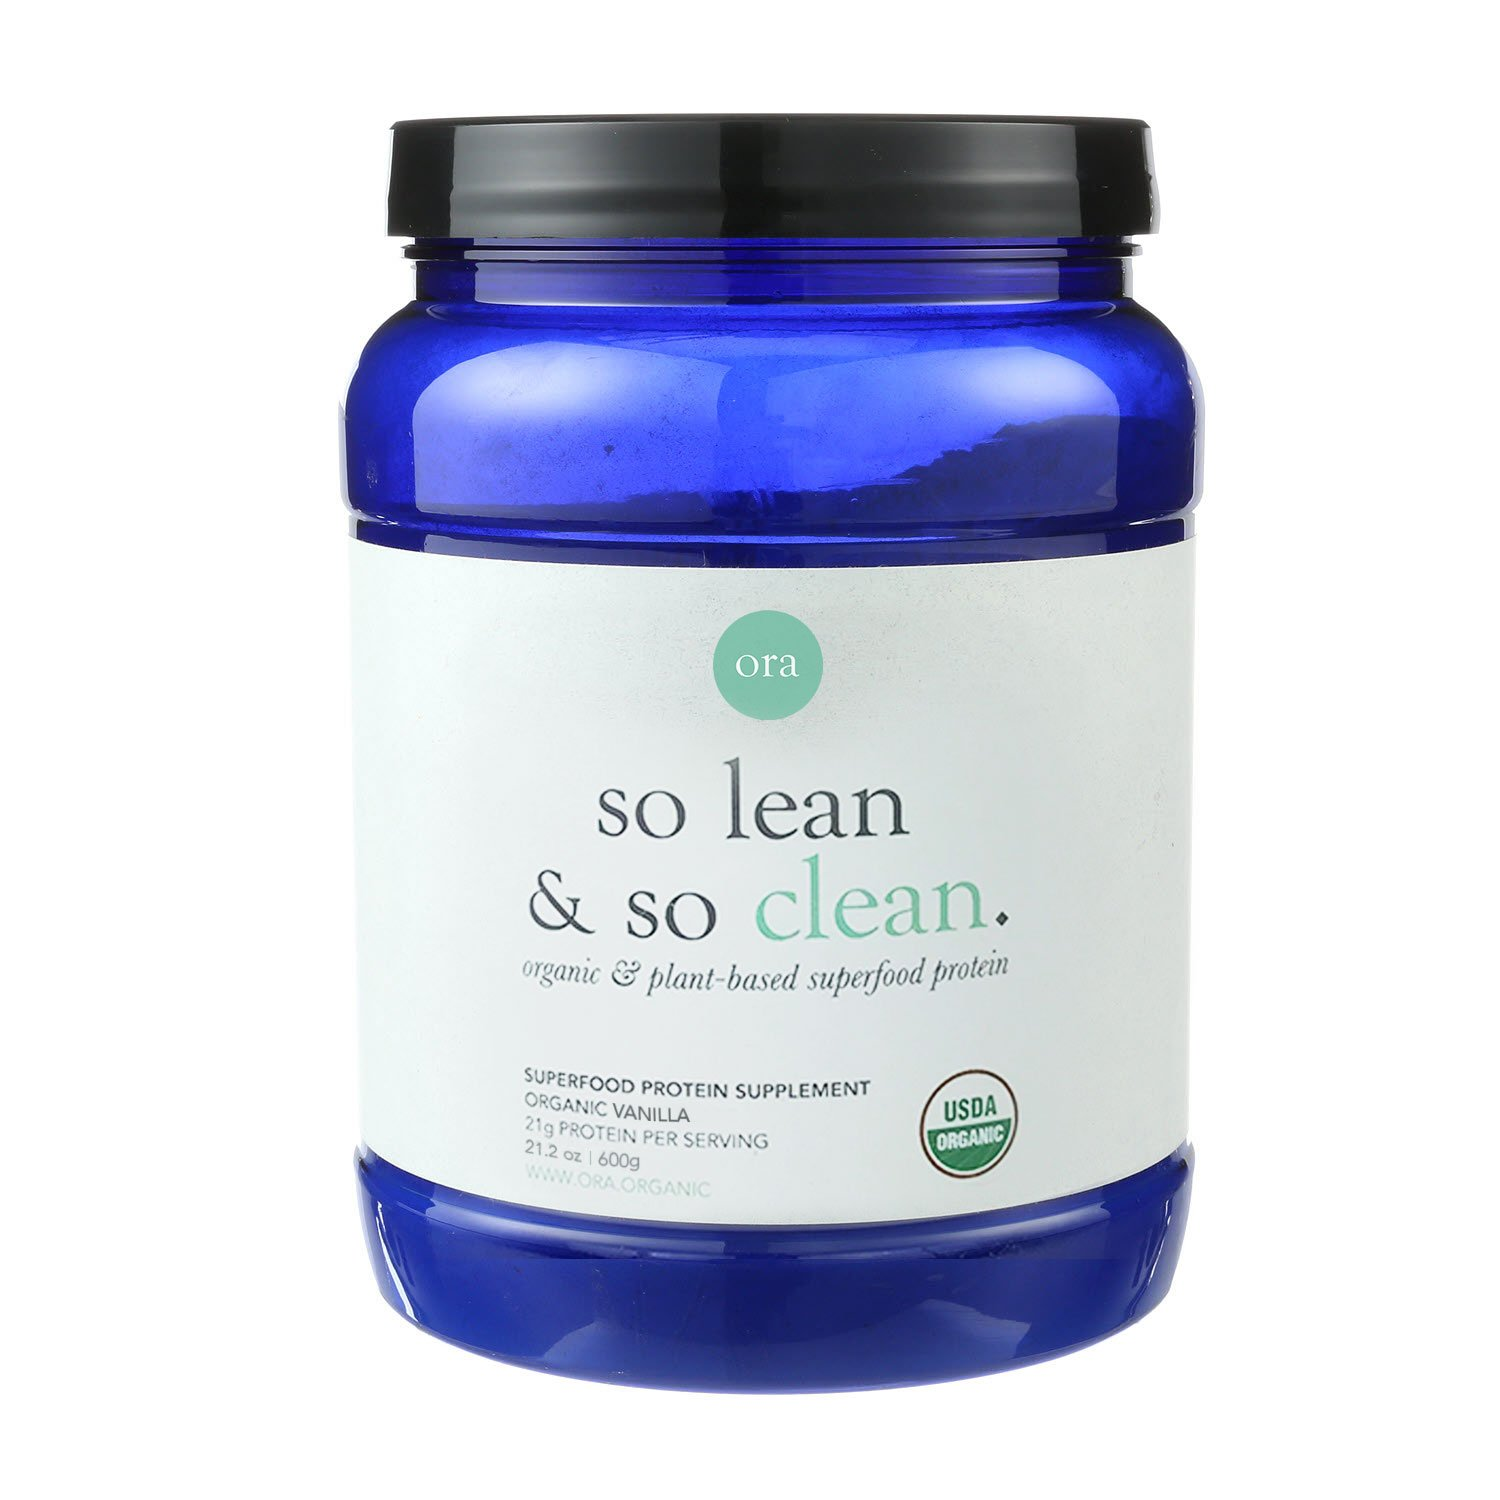 Ora Organic Protein Powder - Vanilla, Plant-based, 21g Protein Per Serving, 2 Servings of Superfood Greens, 1g of Sugar, 21.2oz (600g)